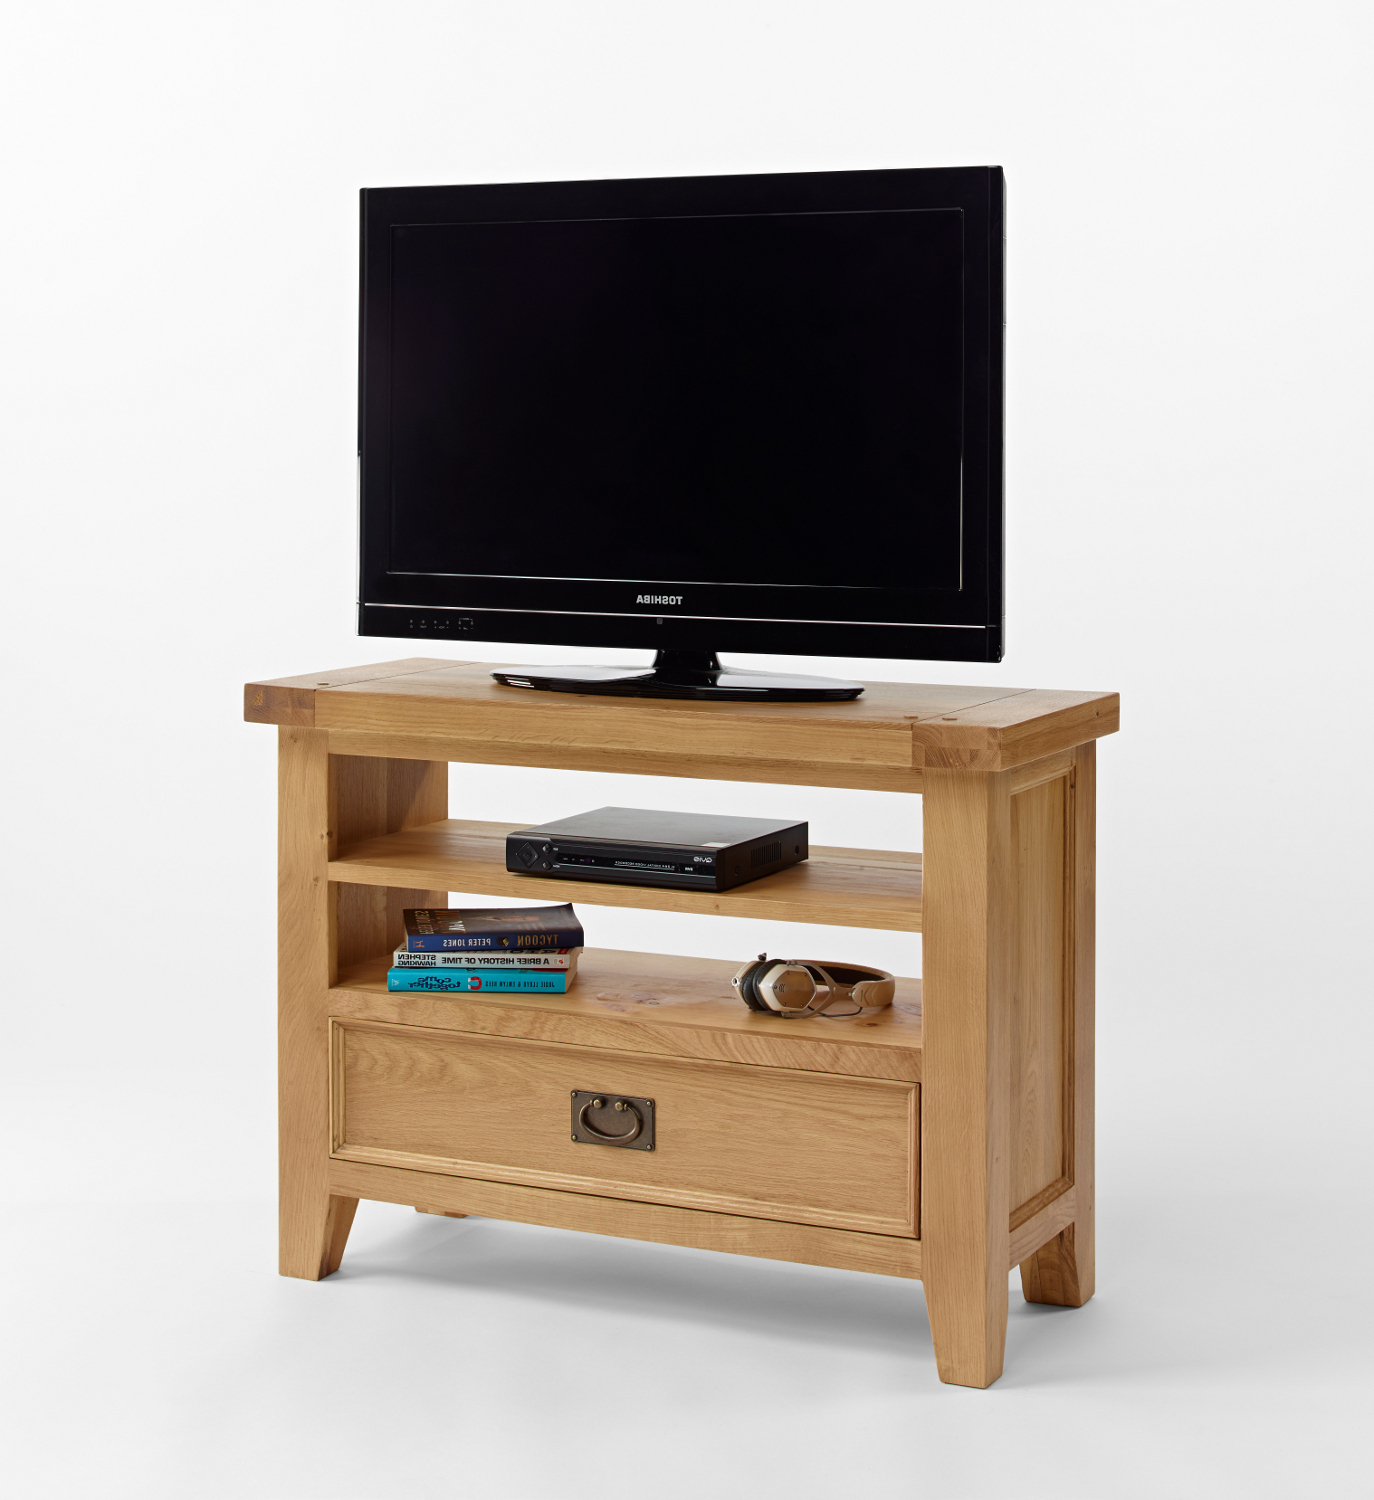 Oak Tv Units Solid Cabinets Corner Furniture Stands Trends Including Intended For Fashionable Oak Widescreen Tv Units (View 18 of 20)